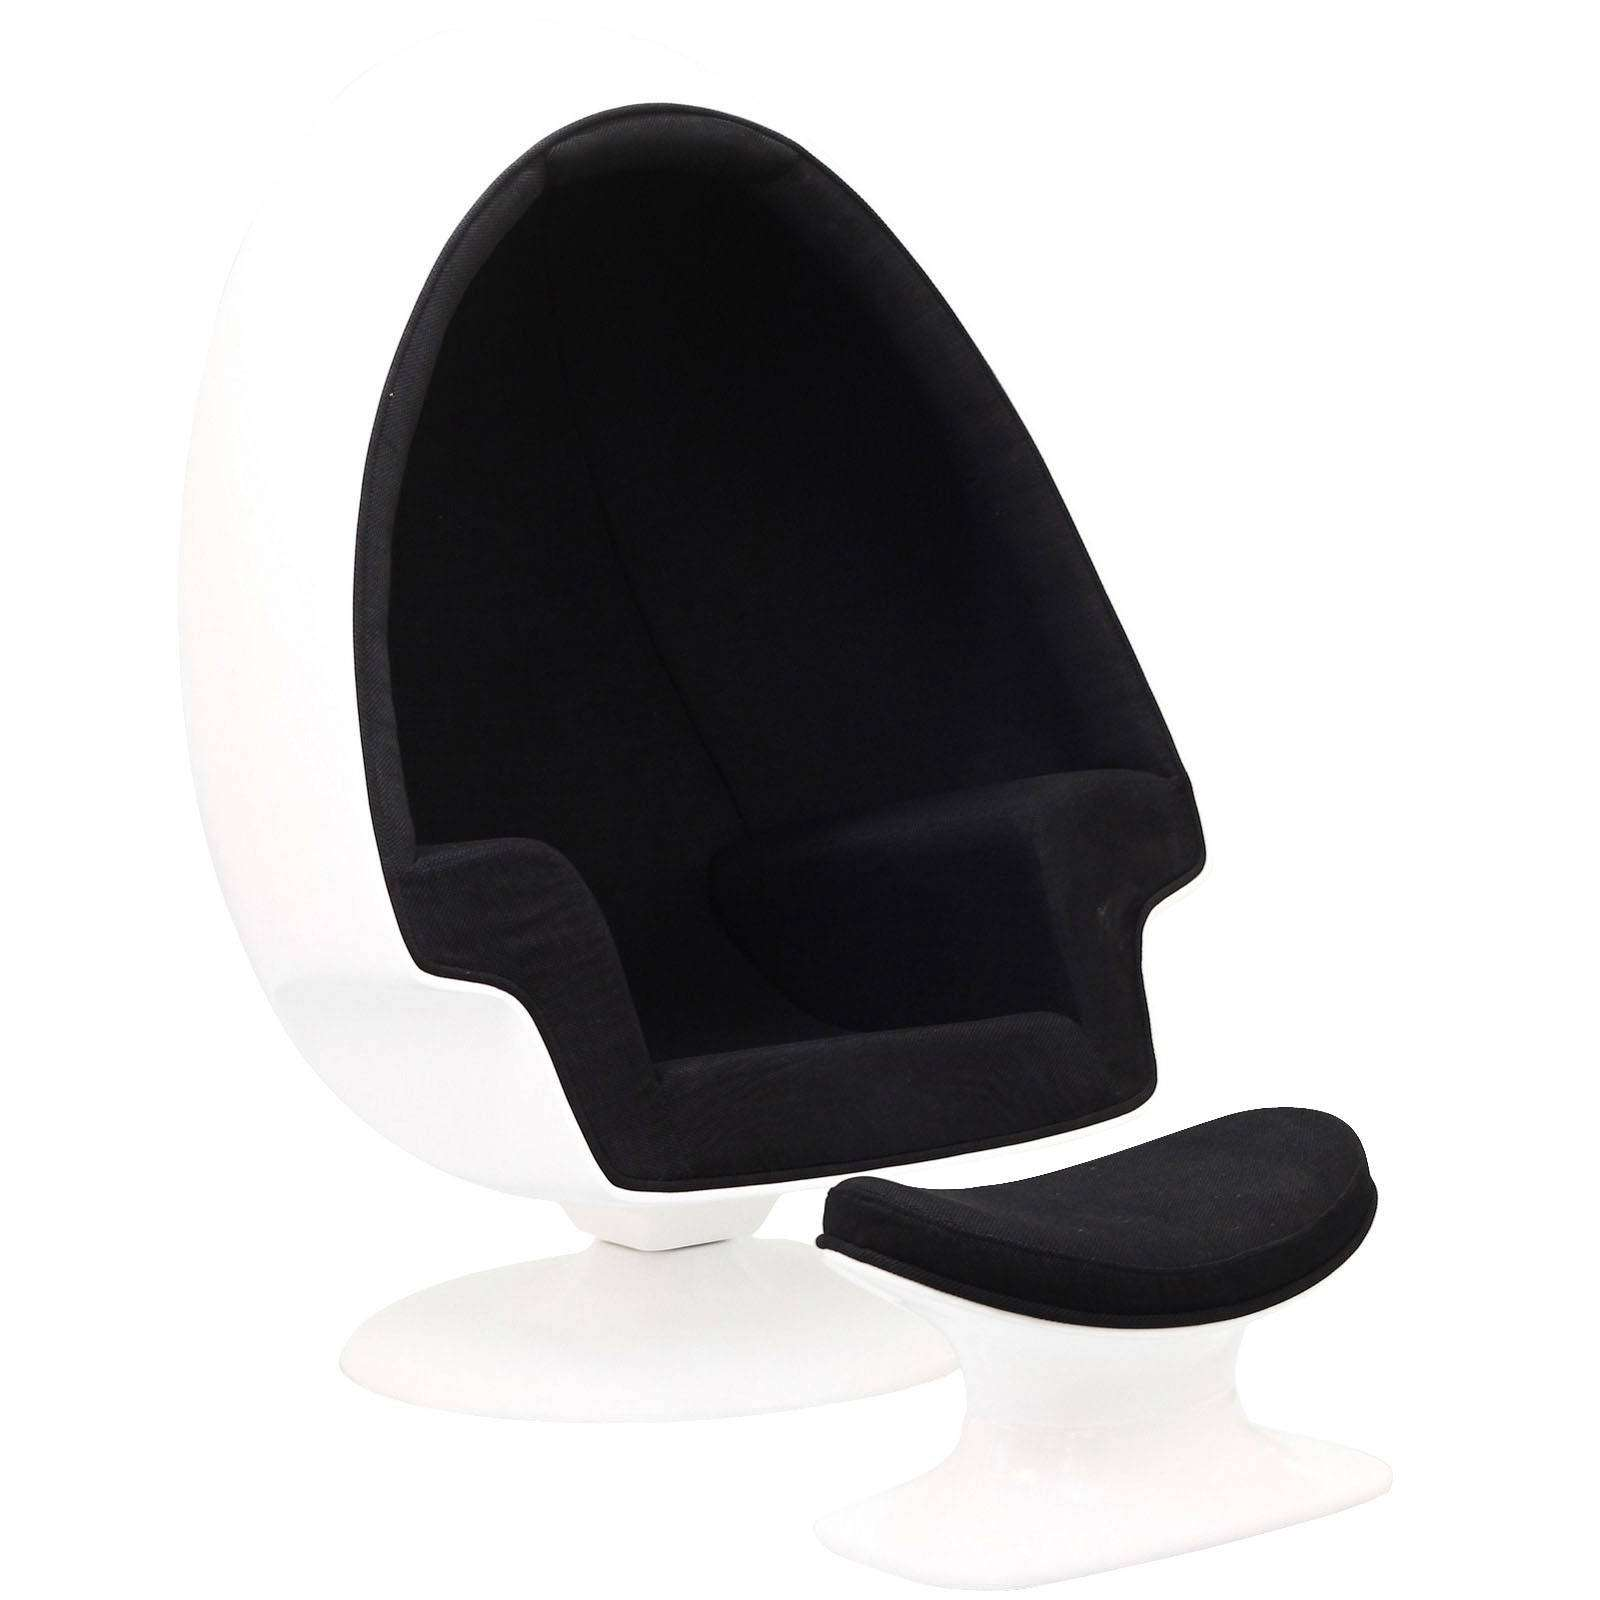 Egg Shaped Chairs Eero Aarnio Alpha Shell Egg Chair And Ottoman